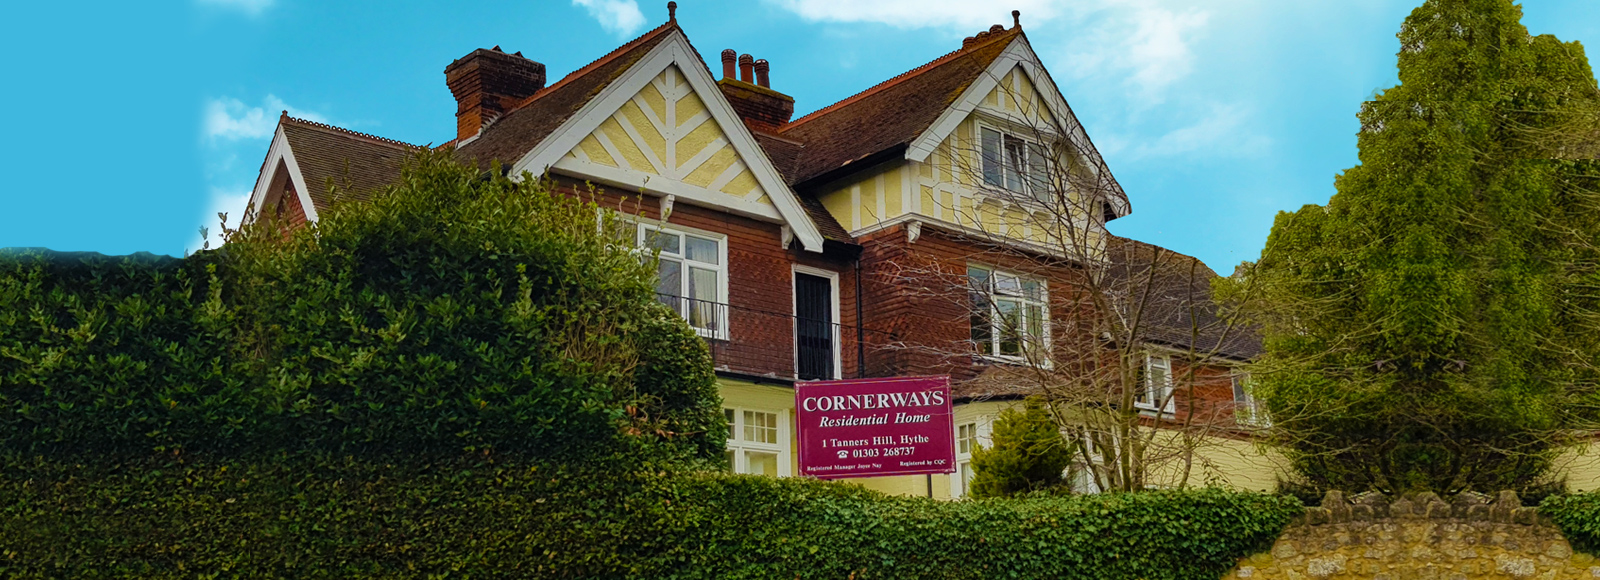 Cornerways Residential Home